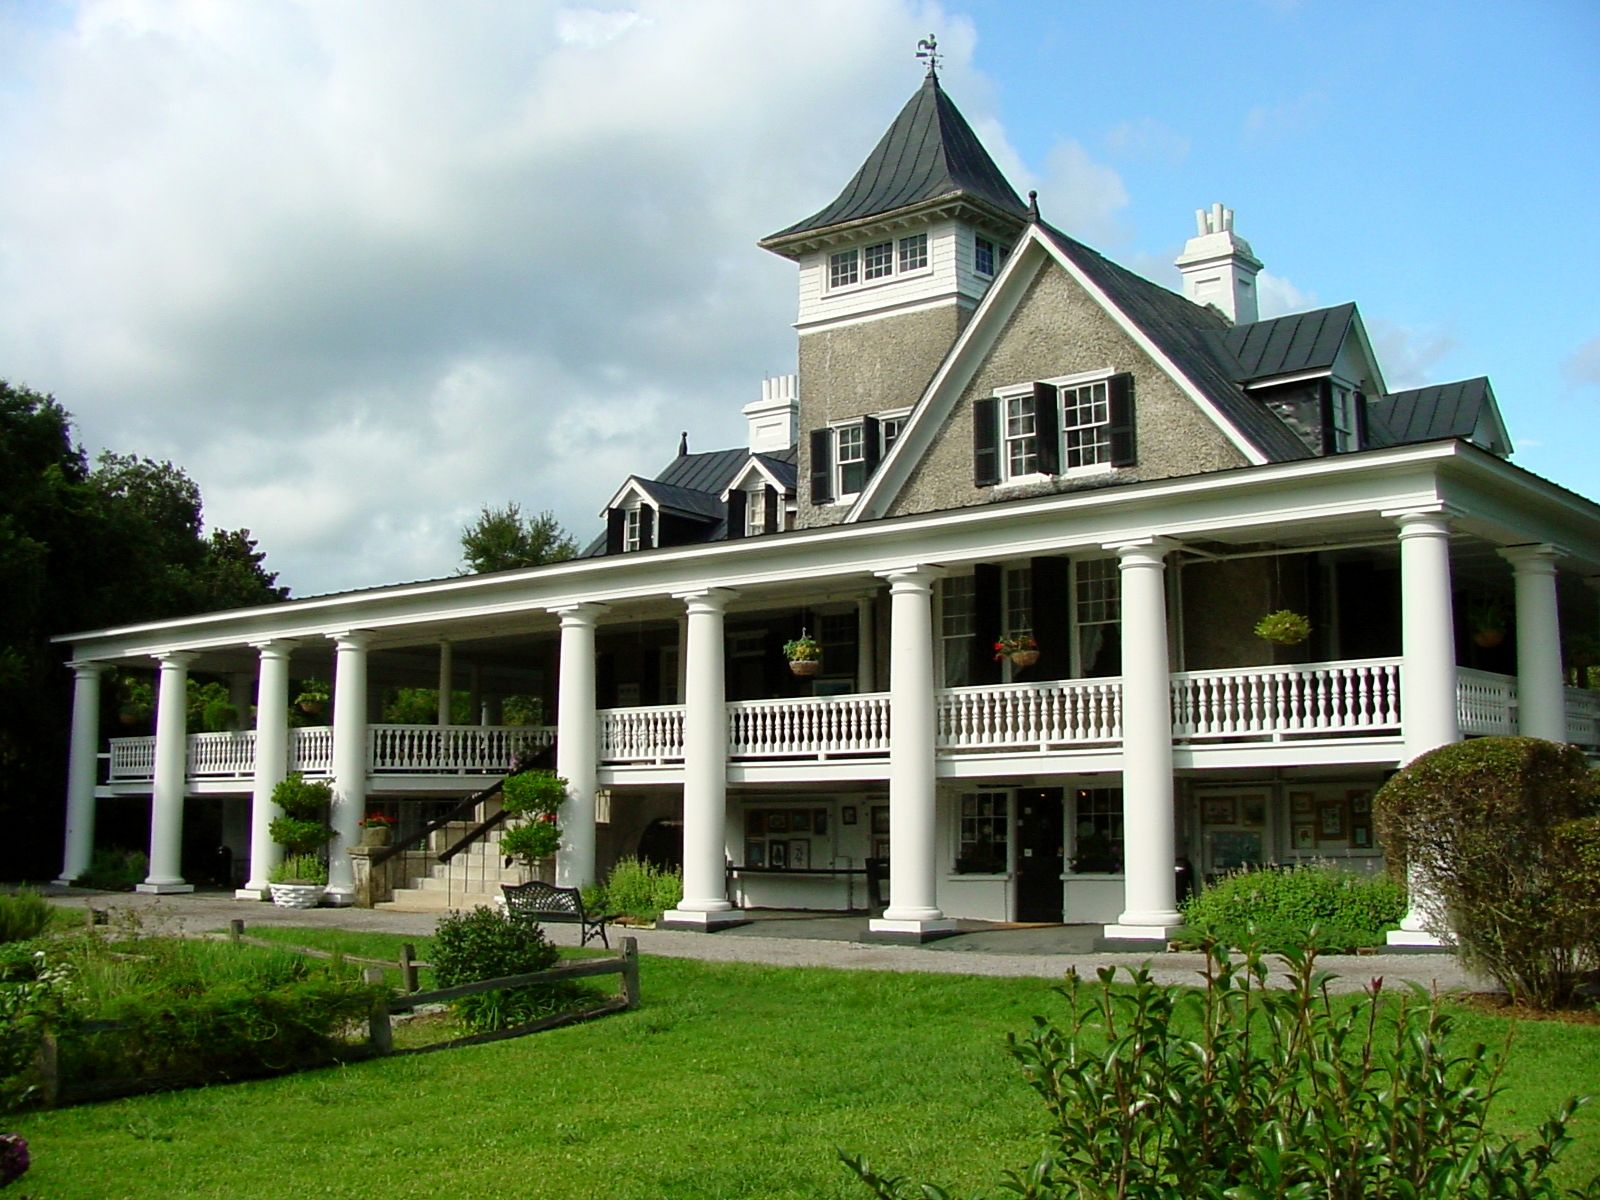 Balcony and front railing house beautiful pinterest - Beautiful houses with balcony ...